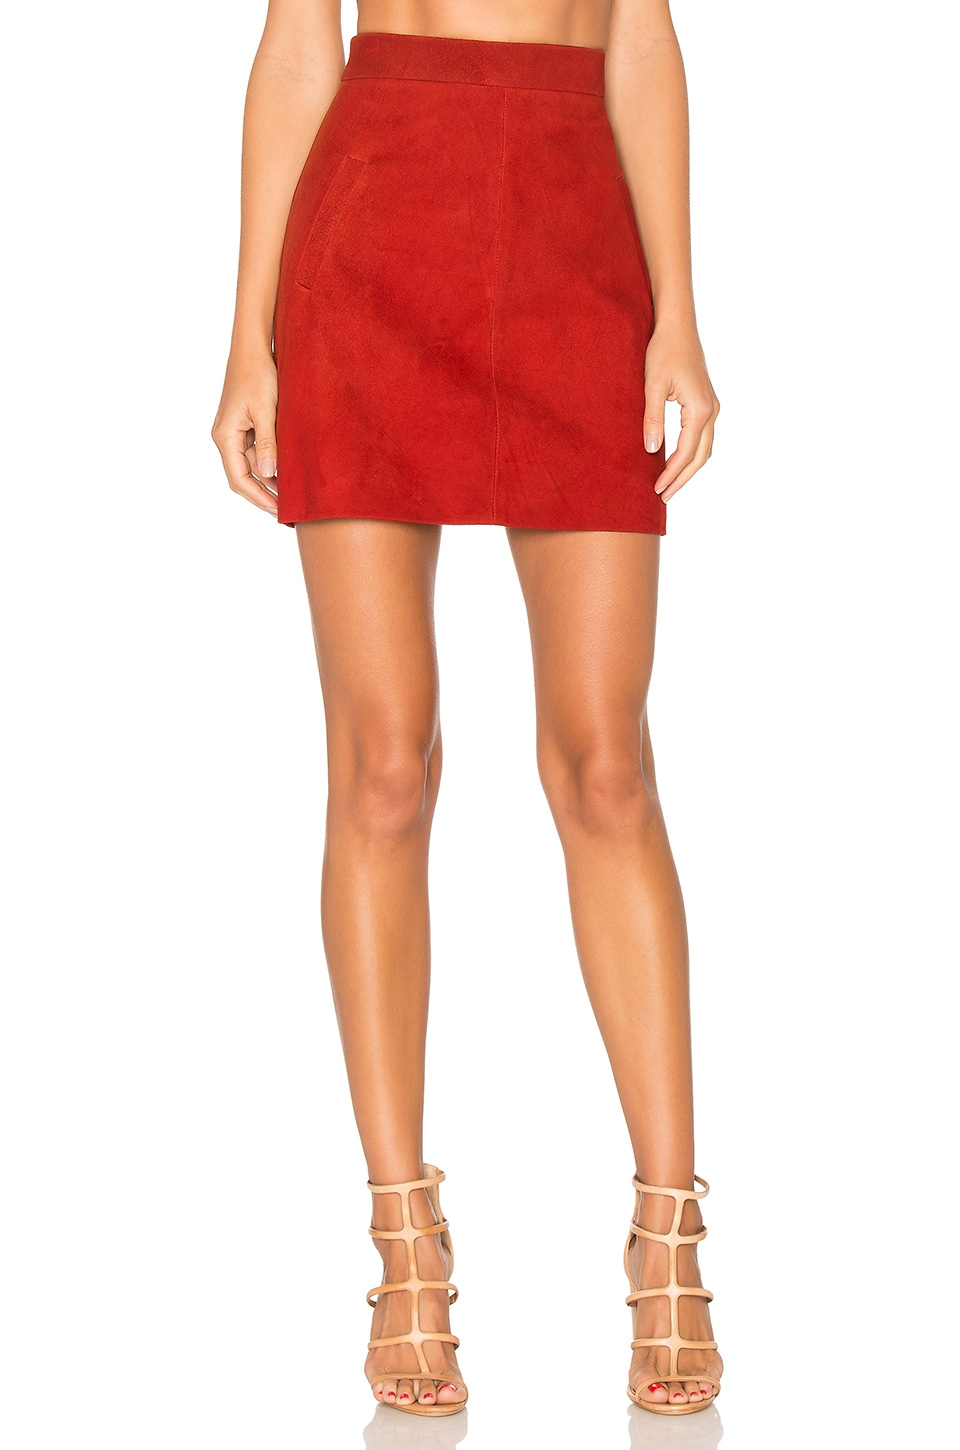 AYNI Wara Mini Skirt in Cherry Suede